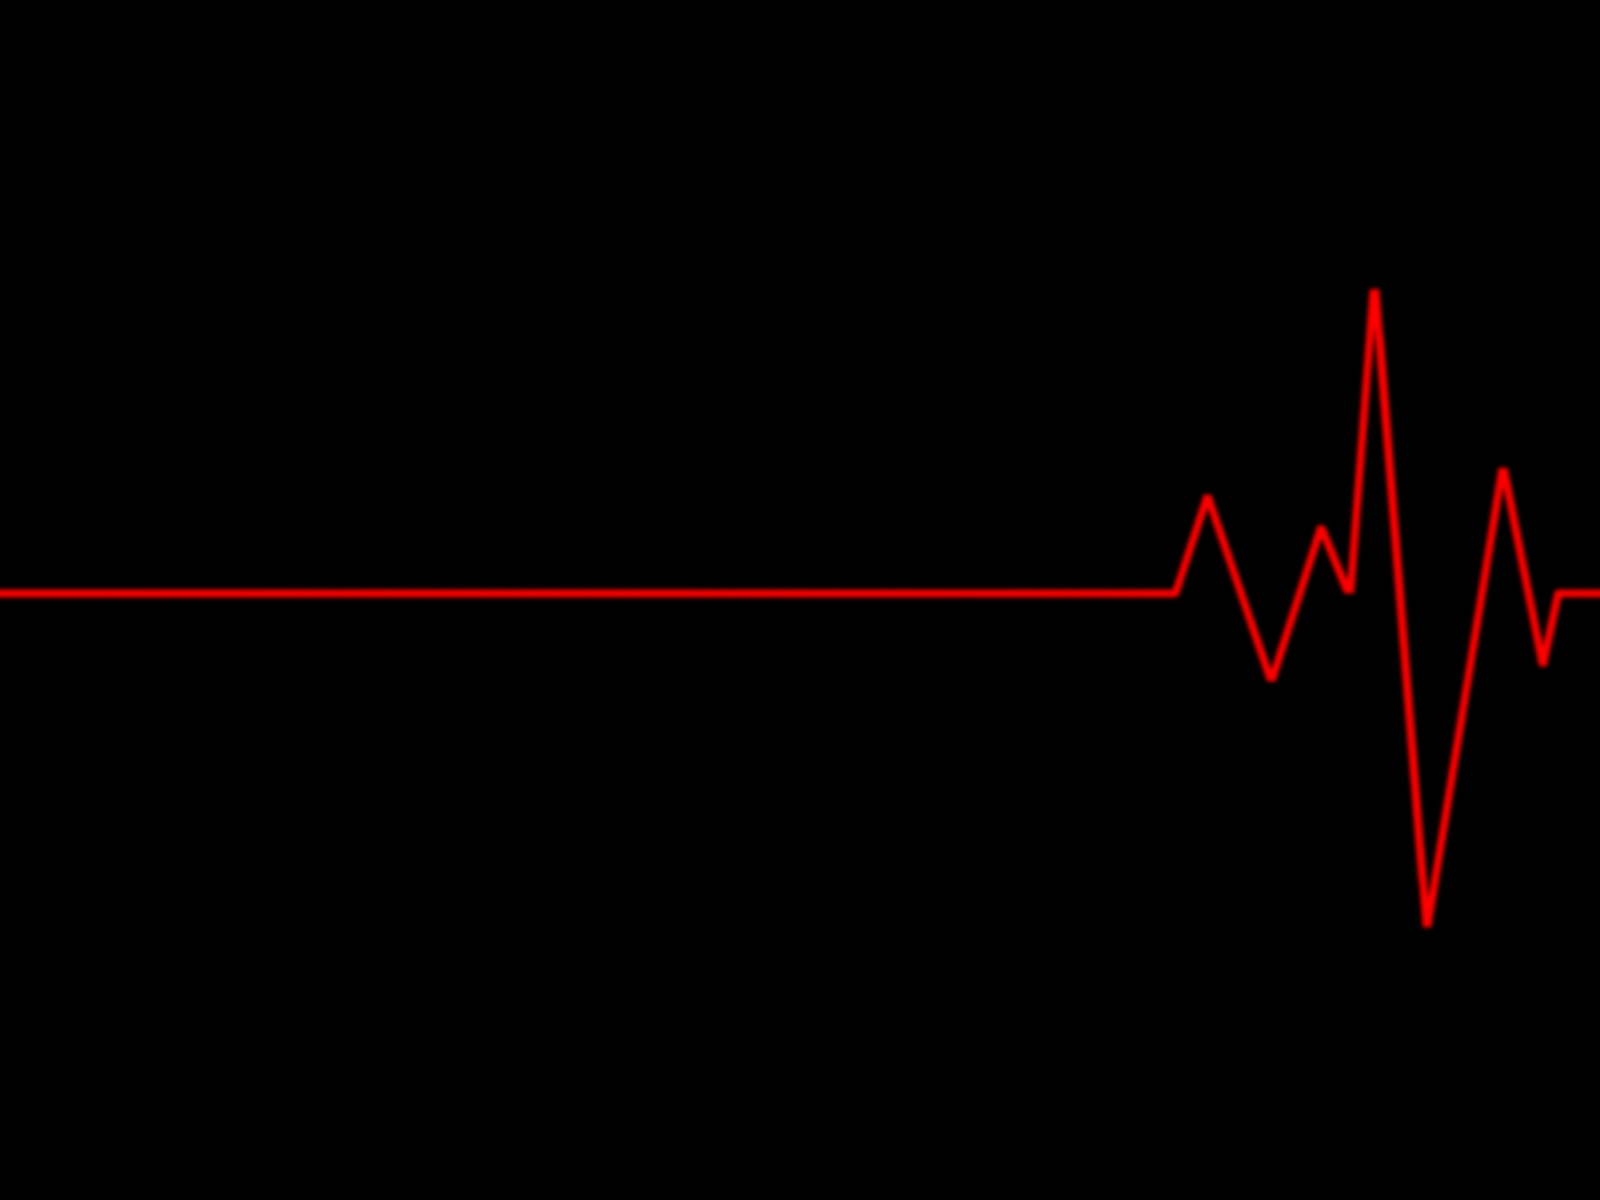 Wallpaper 4 heart beat red and black wallpapers Black Background and 1600x1200